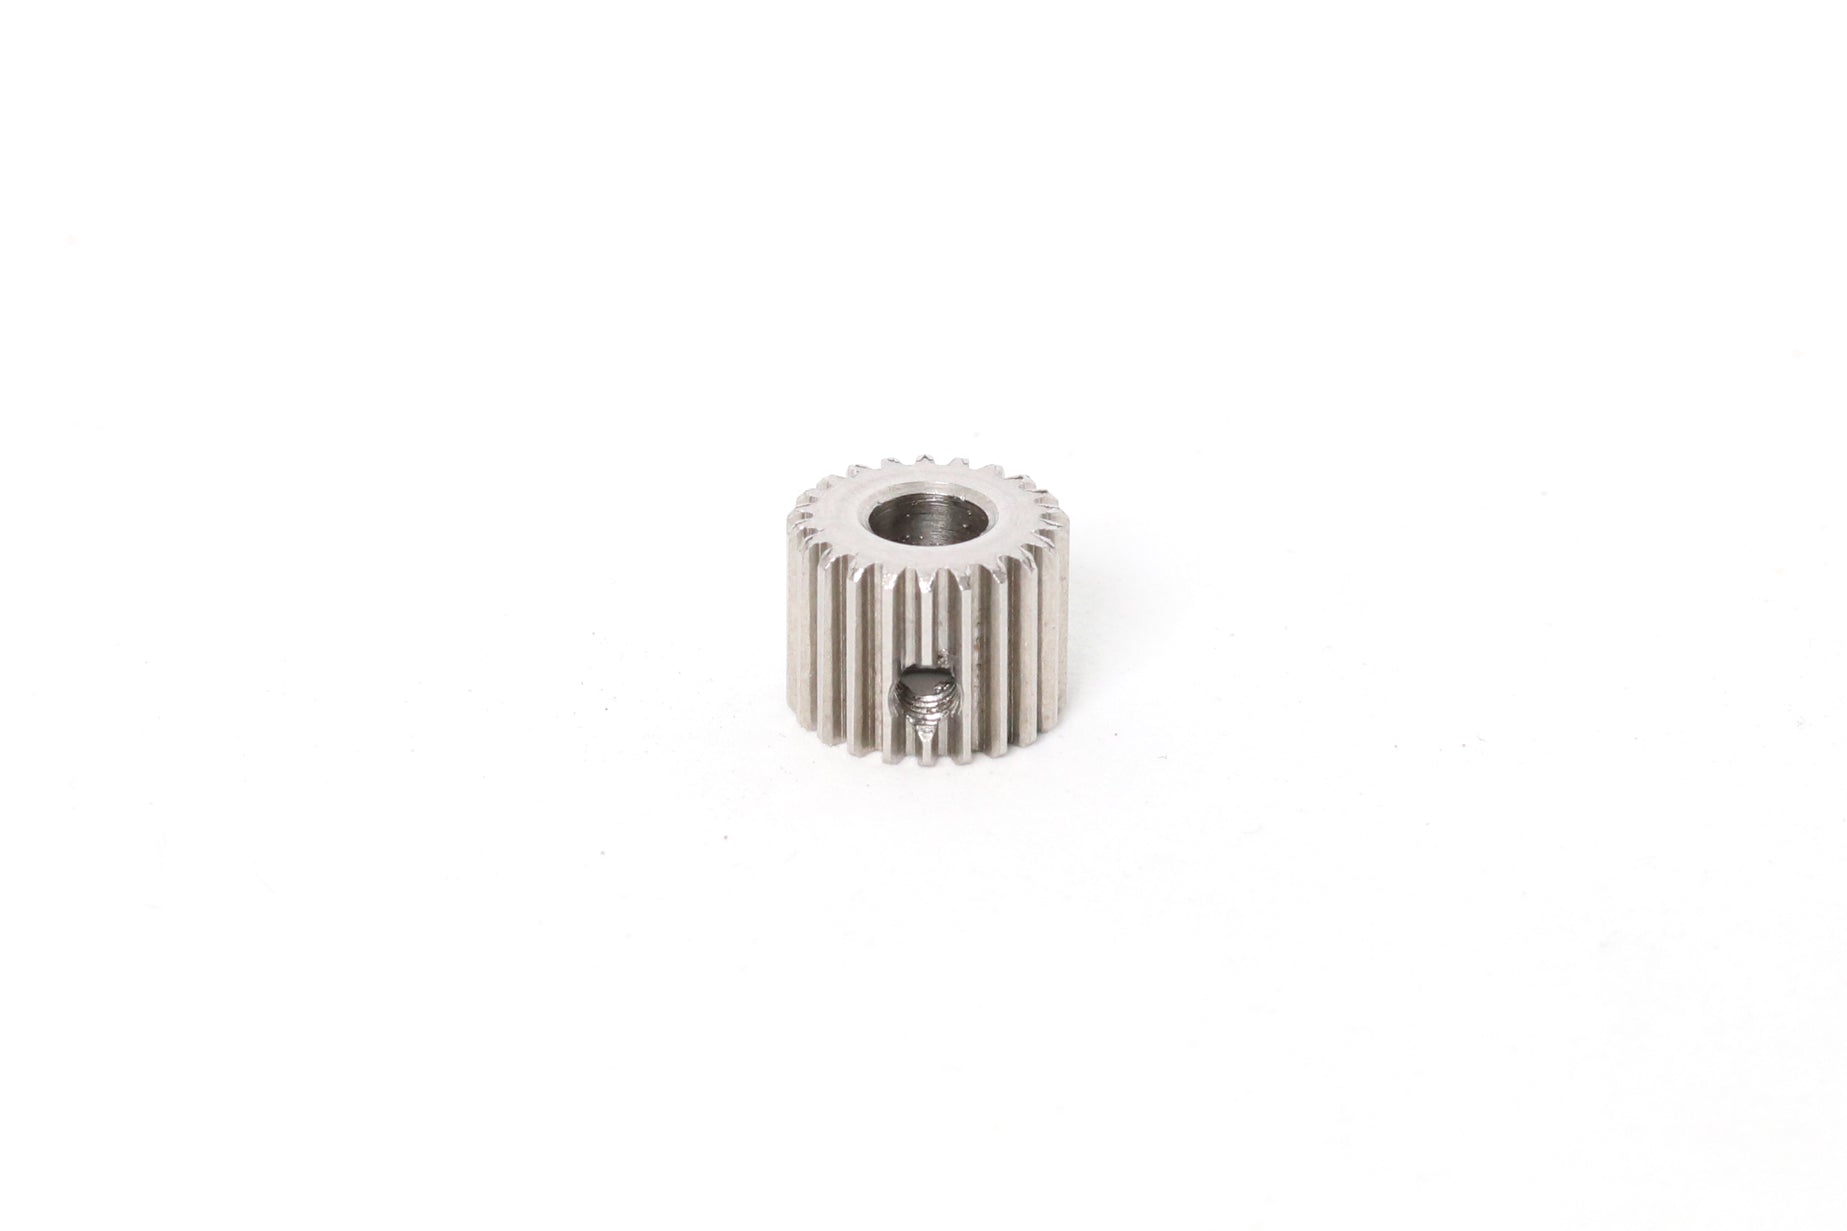 3D Printing Canada - Titan Stainless Steel Extruder Gear 22T (ID: 5mm)